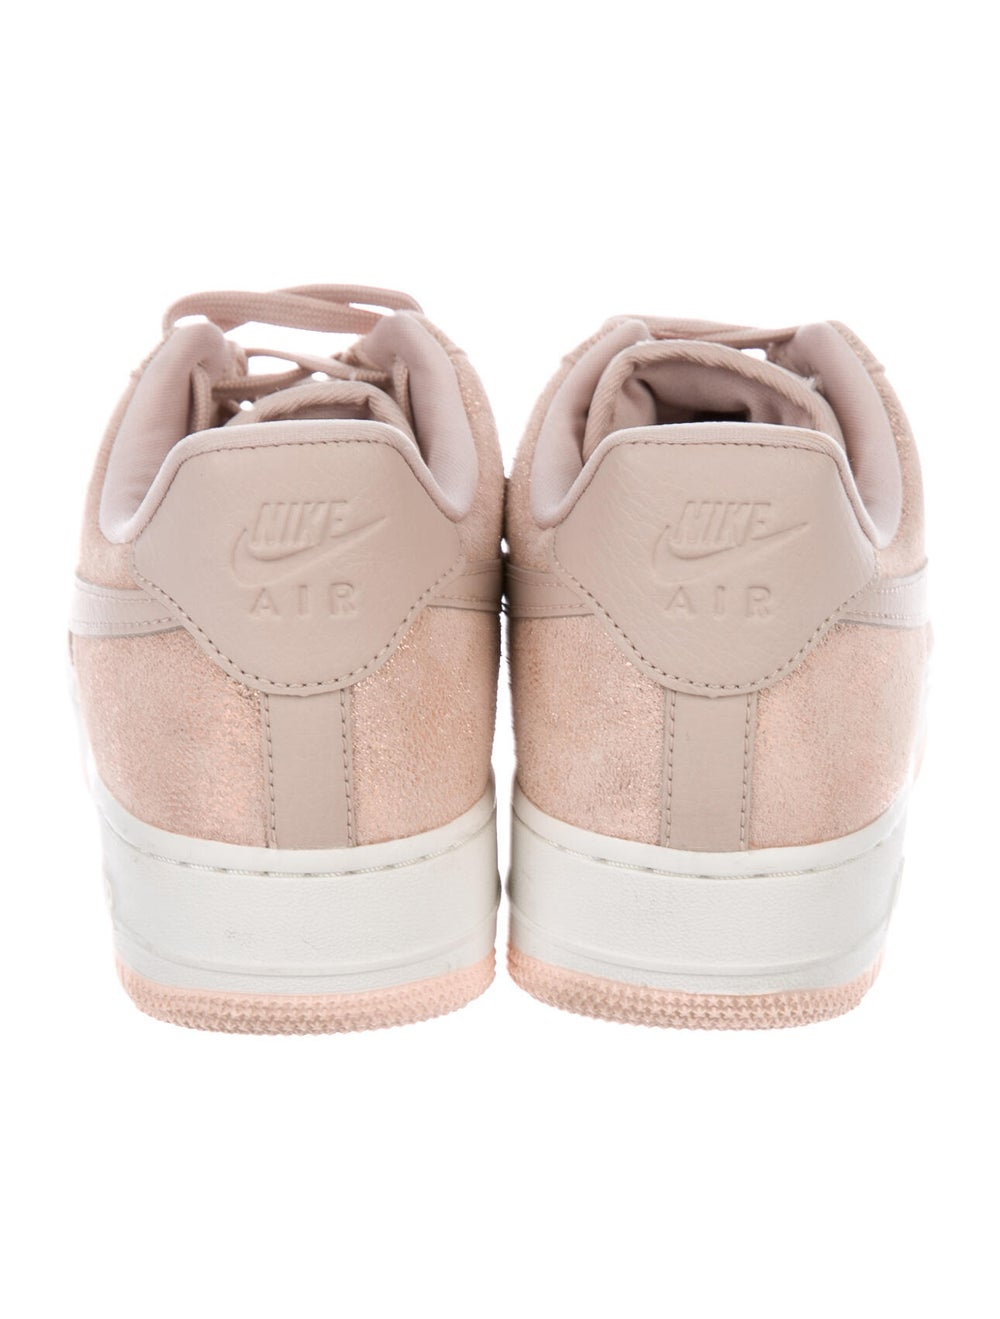 Nike Nike Air Force 1 Sneakers Metallic - image 4